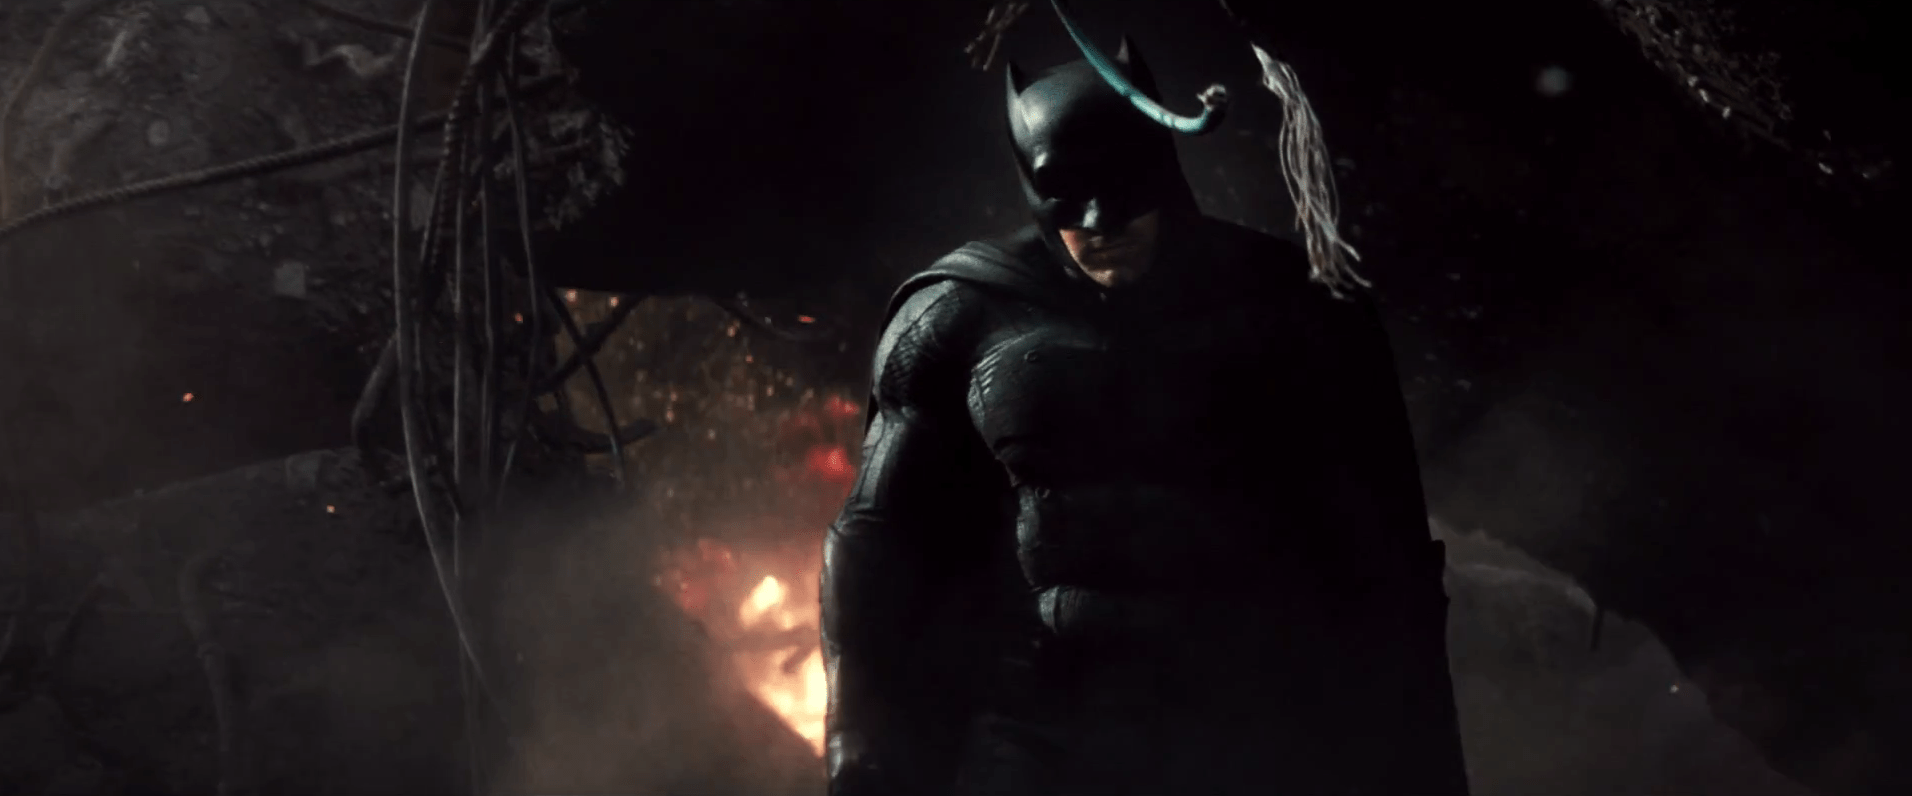 10 Things to Note in the First Trailer for Batman v Superman